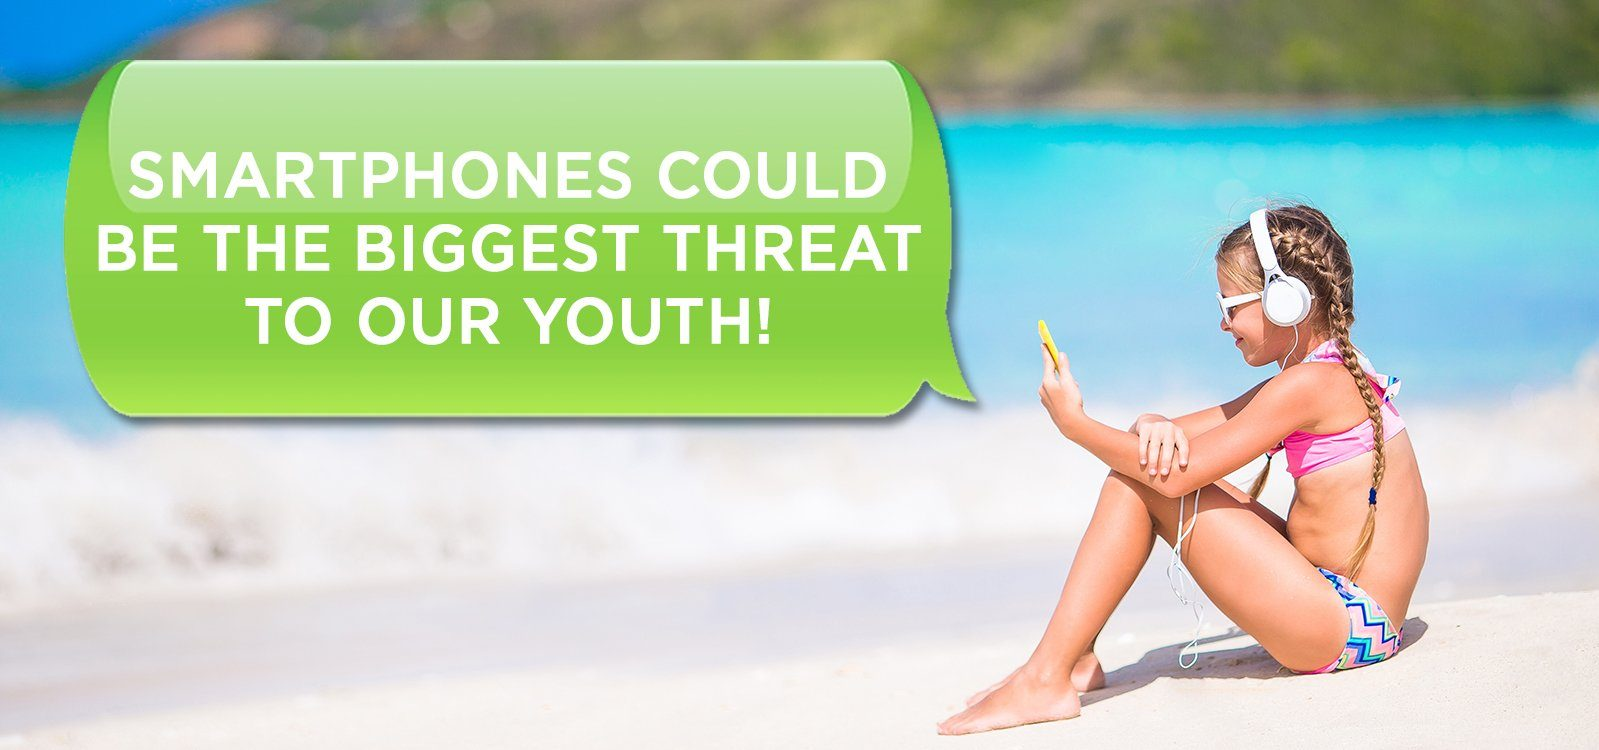 SMARTPHONES COULD BE THE BIGGEST THREAT TO OUR YOUTH